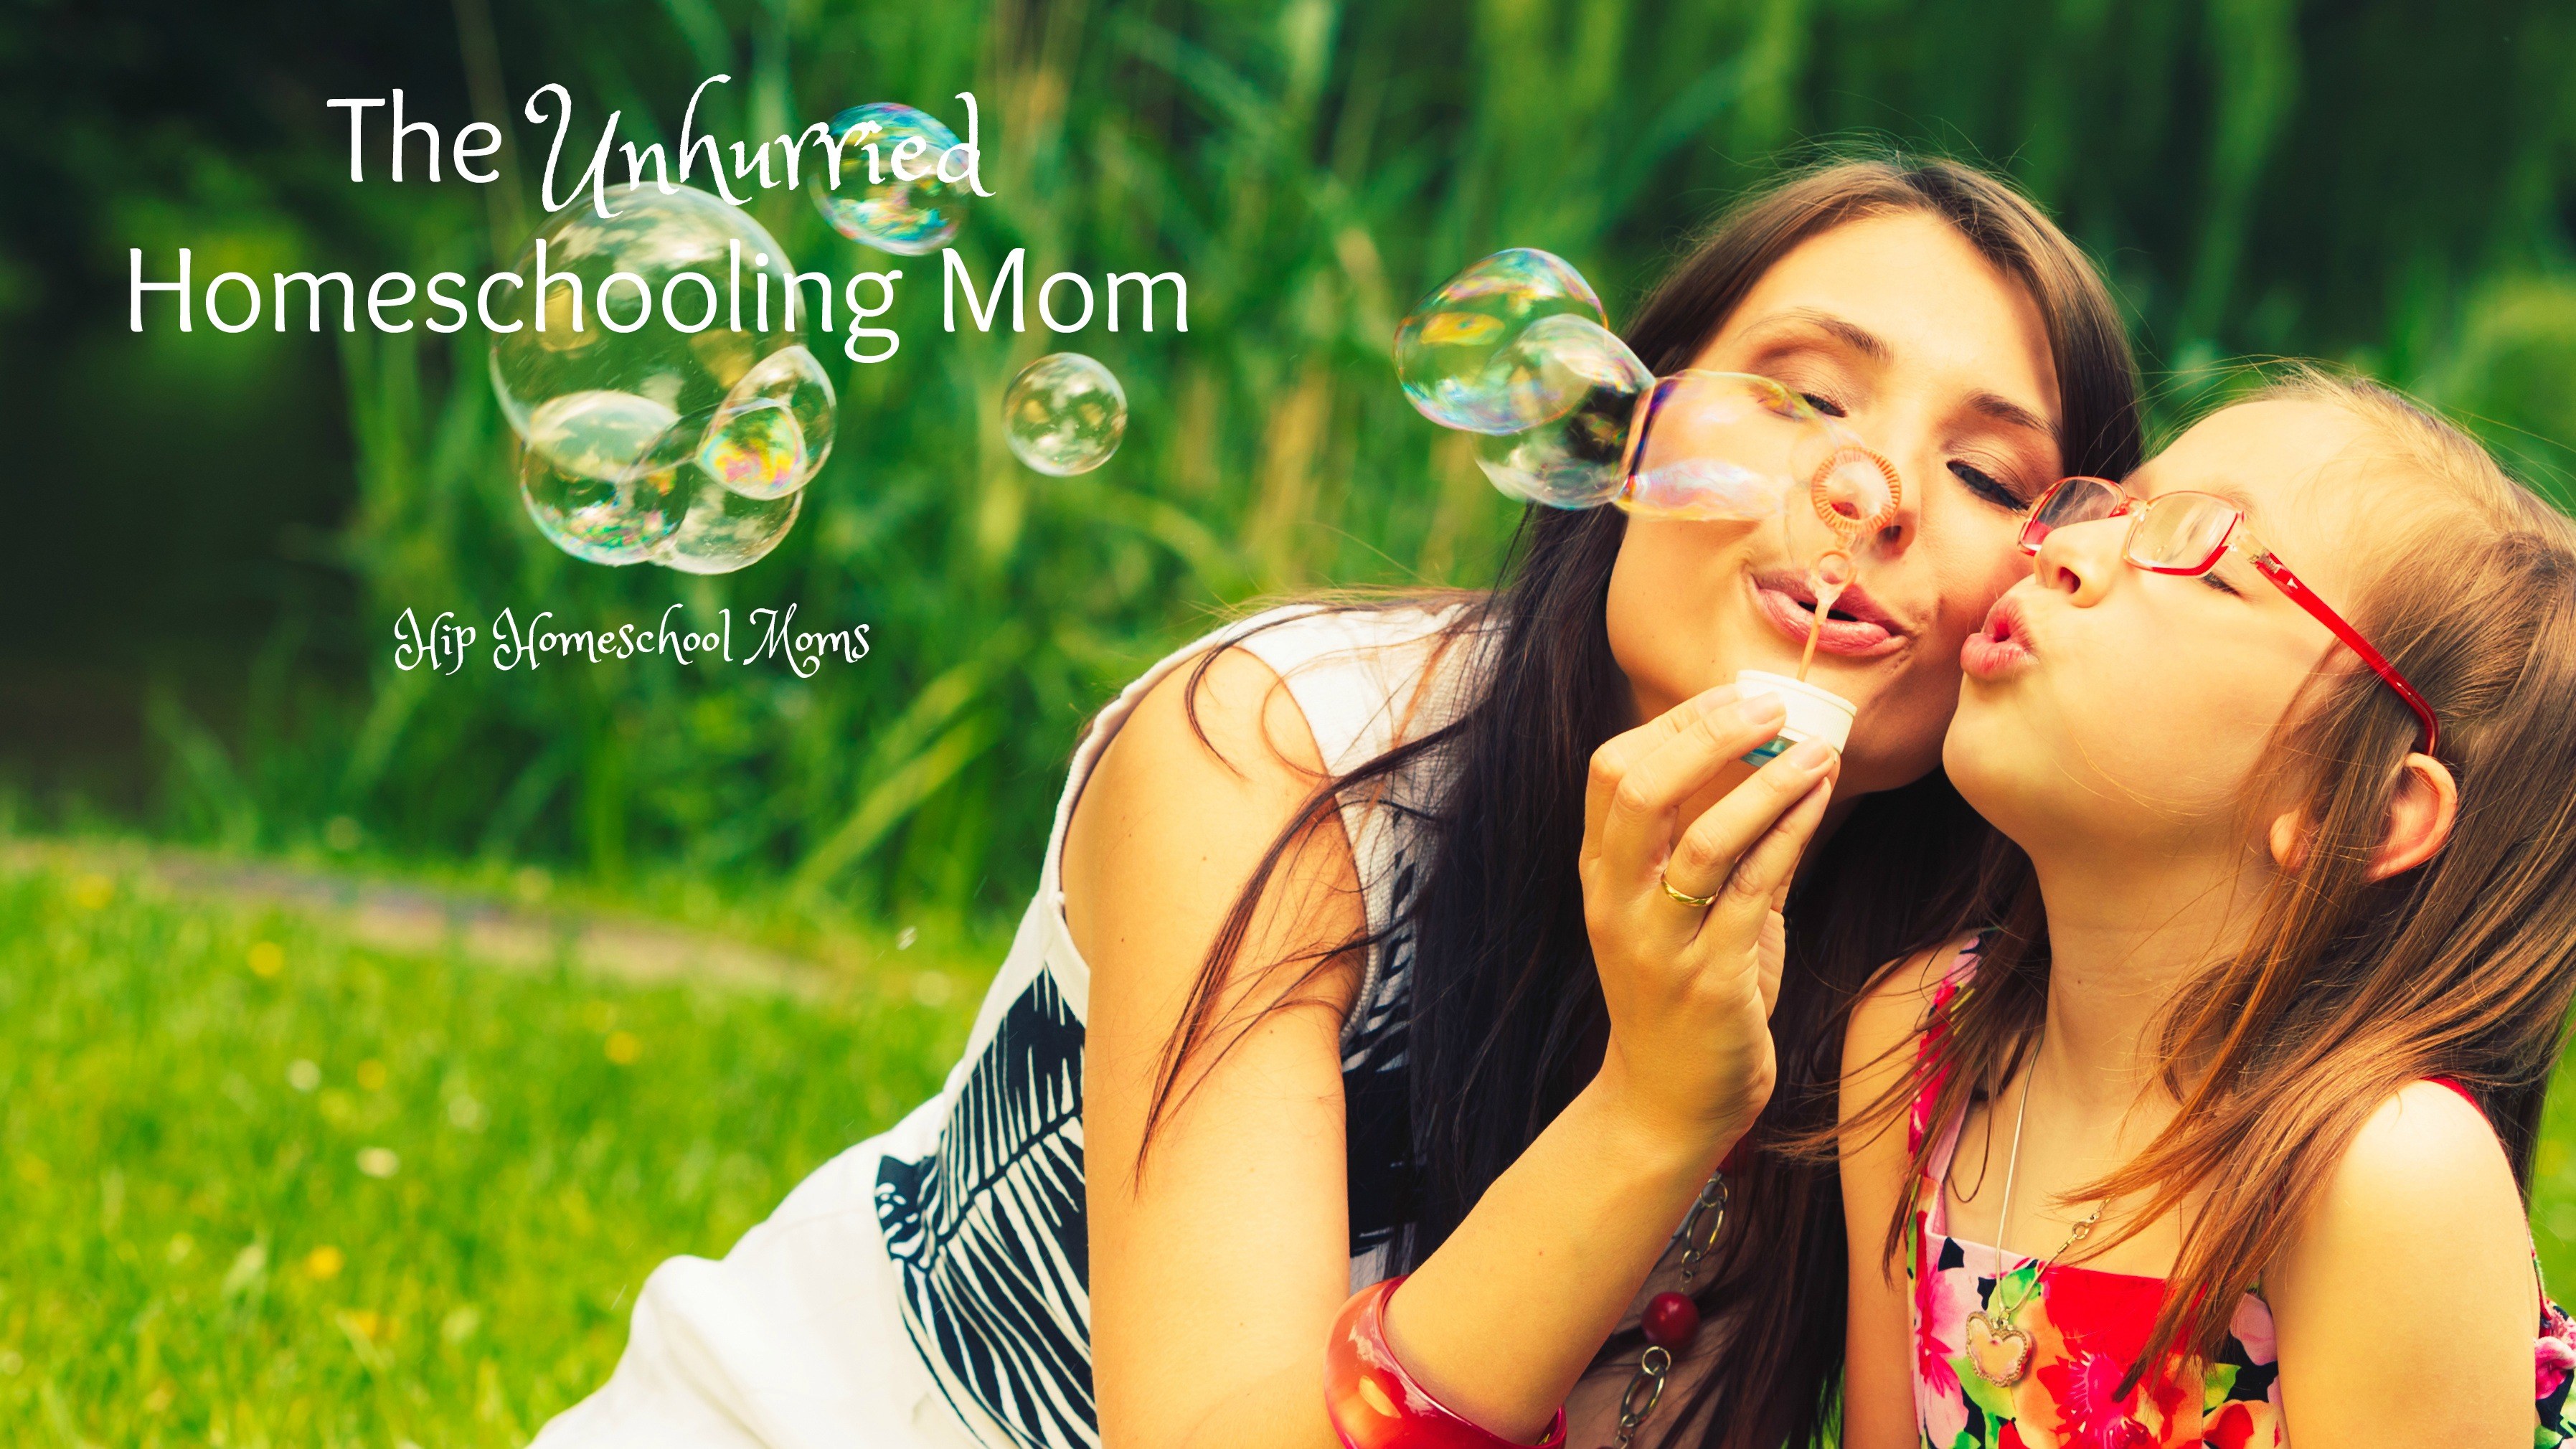 The Unhurried Homeschooling Mom